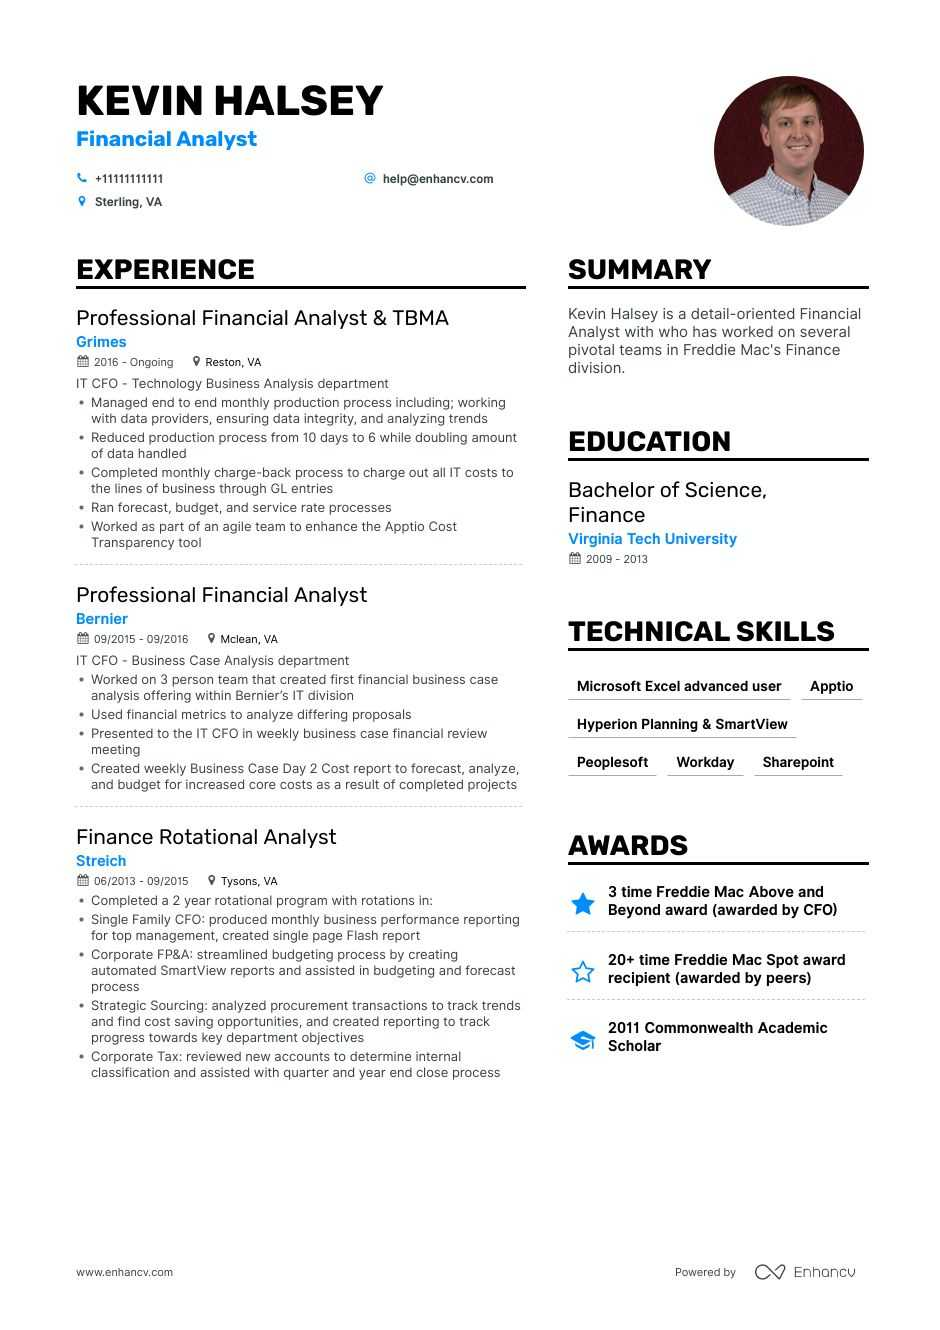 financial analyst resume example for enhancv skills entry level auditor objective updated Resume Financial Analyst Skills Resume